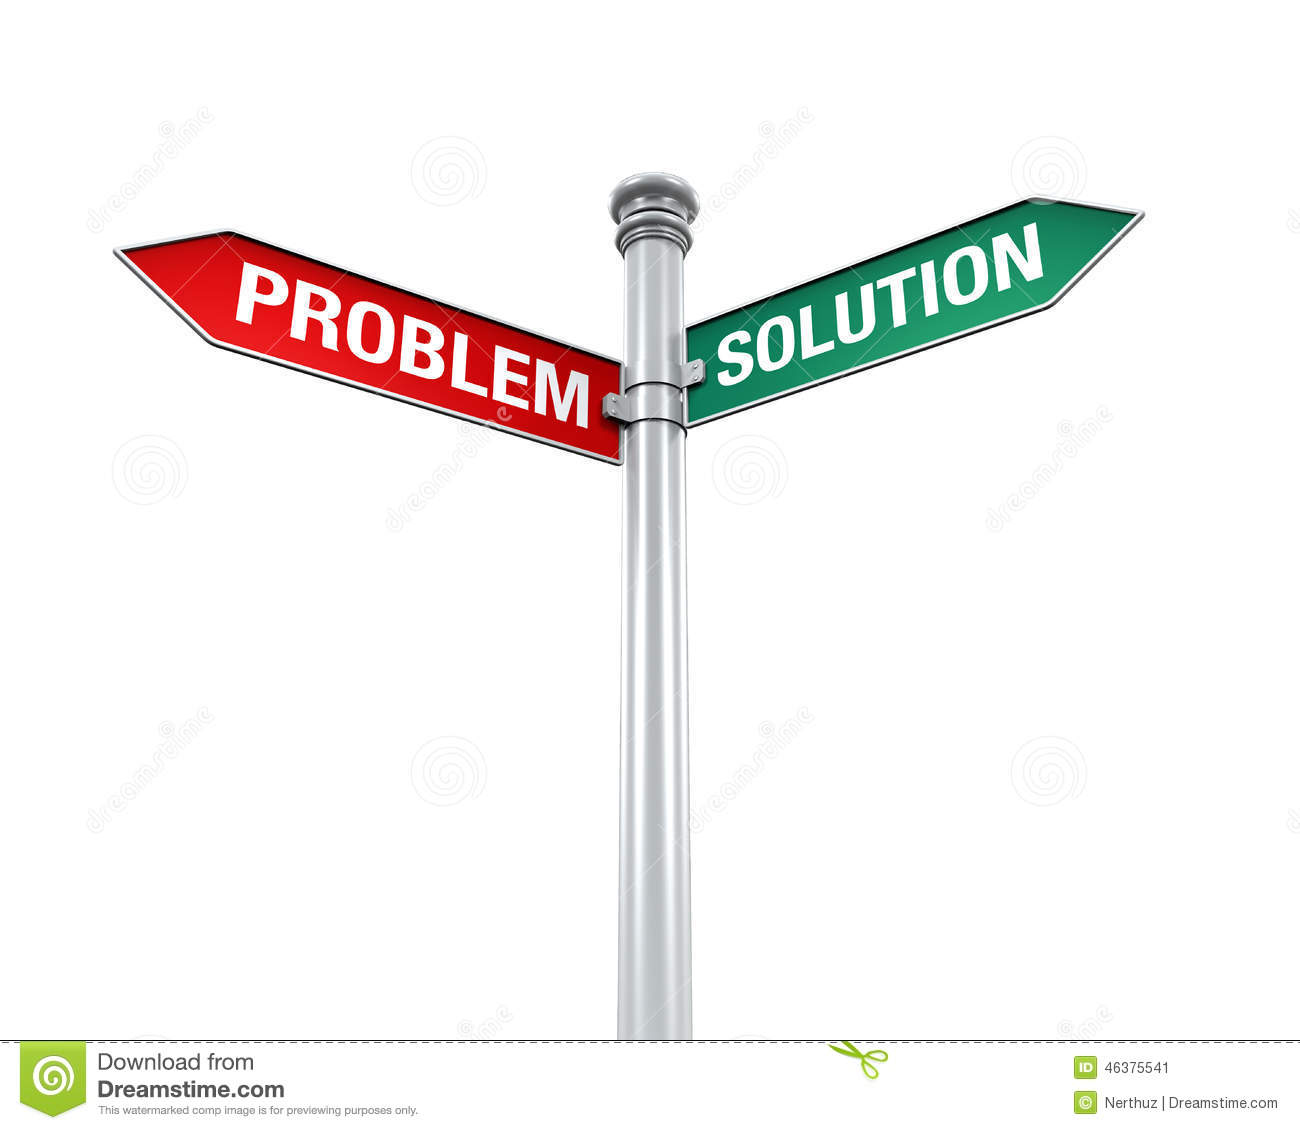 solution to problems Detailed solutions to algebra problems such as solving eqautions, simplifying expressions with square root and absolute value, finding x intercepts, finding slope.